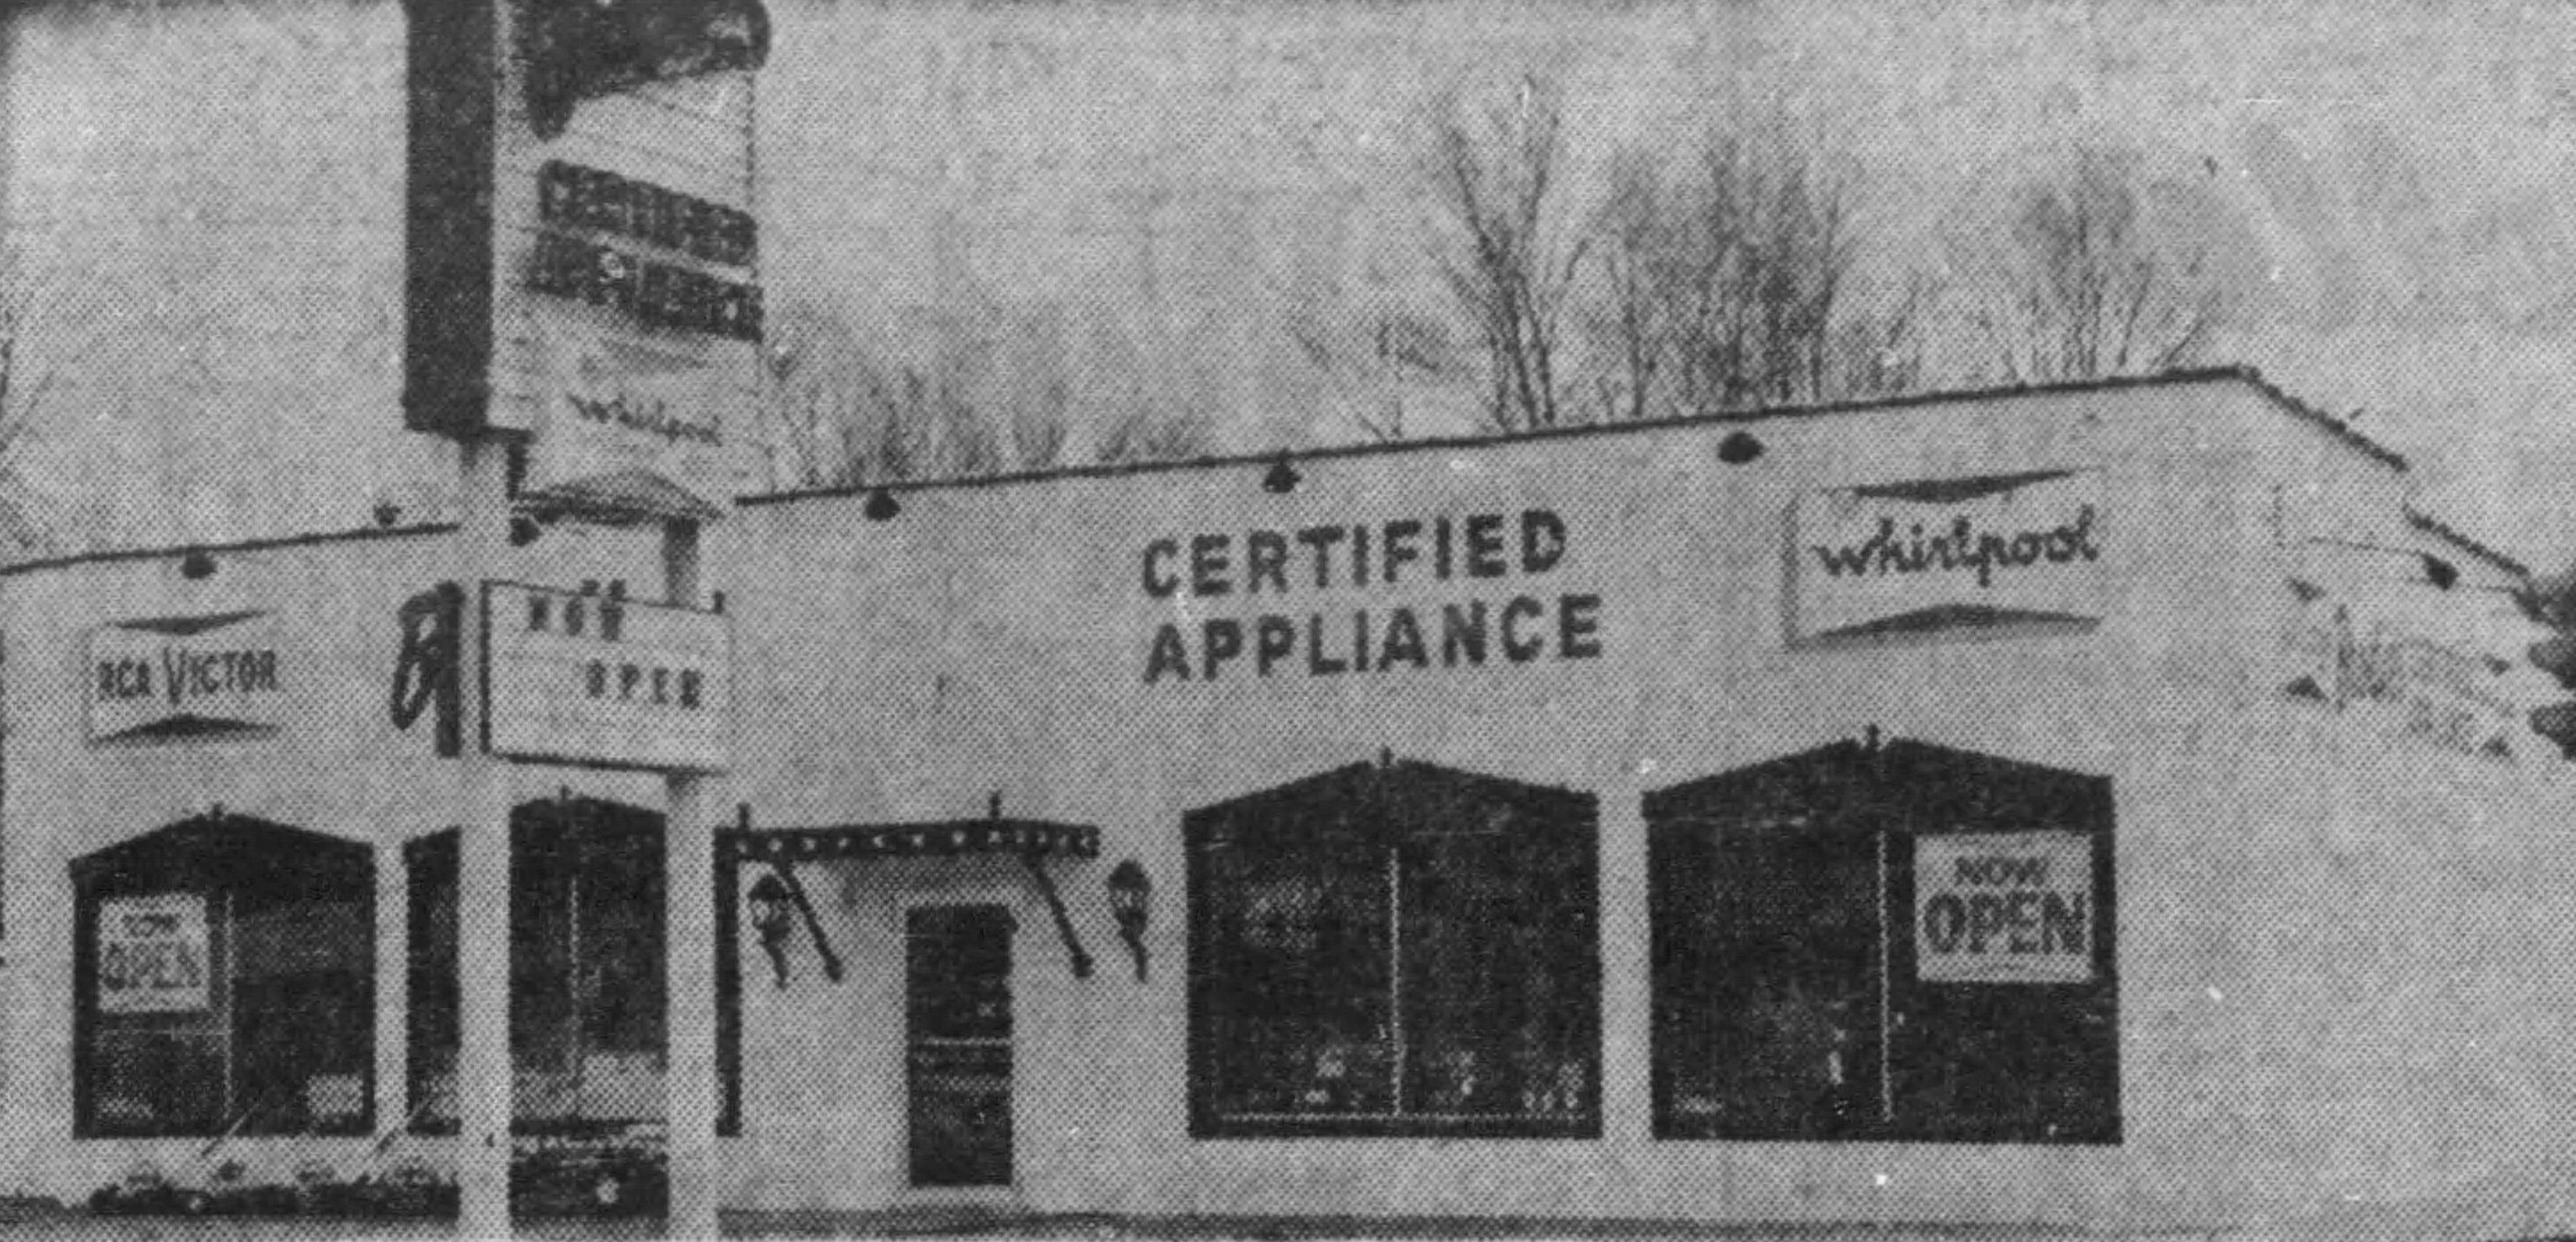 Before Karl's, Brodie's was a source for appliances and electronics in Sioux Falls: Looking Back